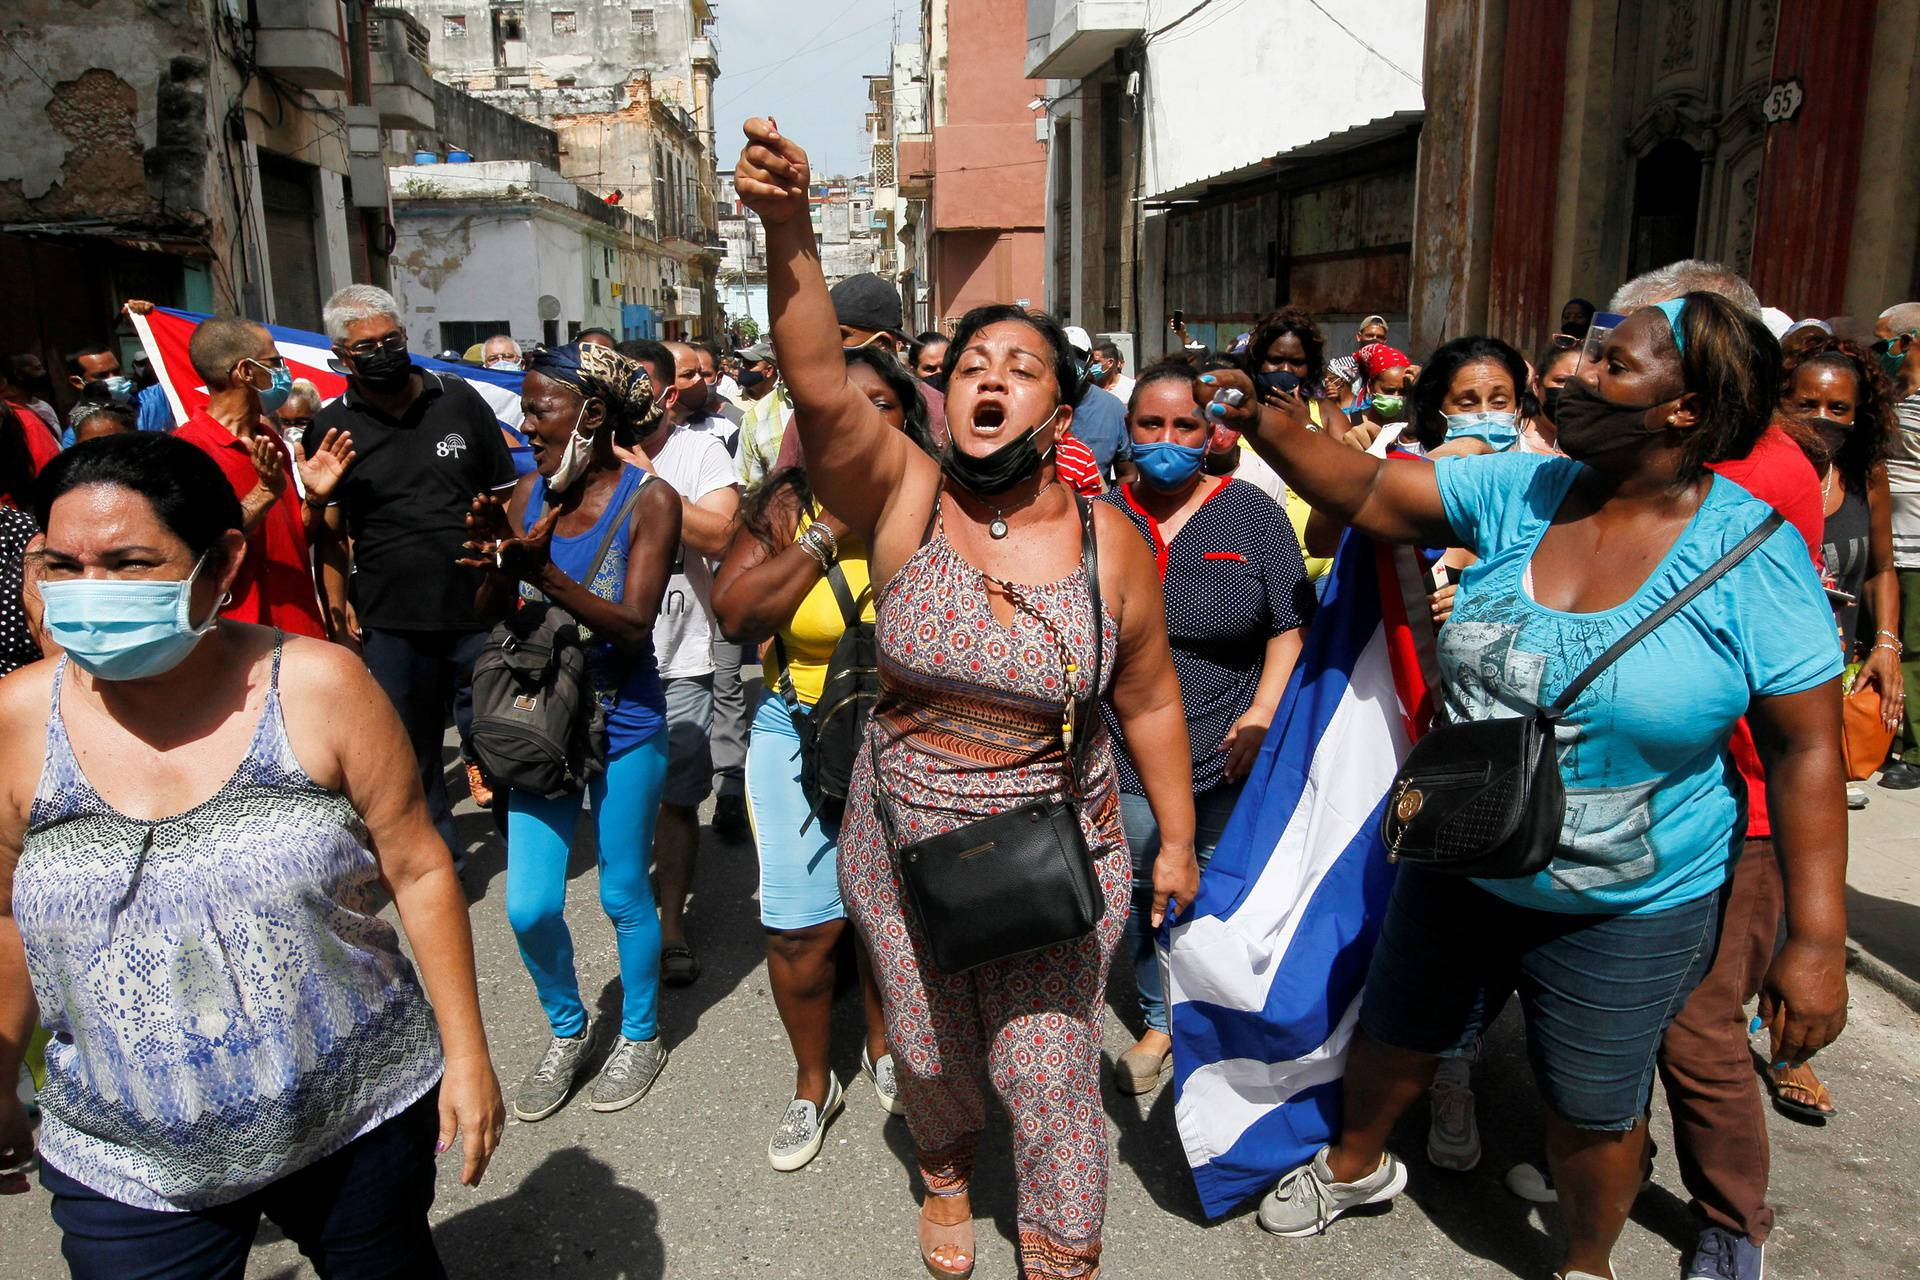 Government supporters react during protests against and in support of the government, in Havana